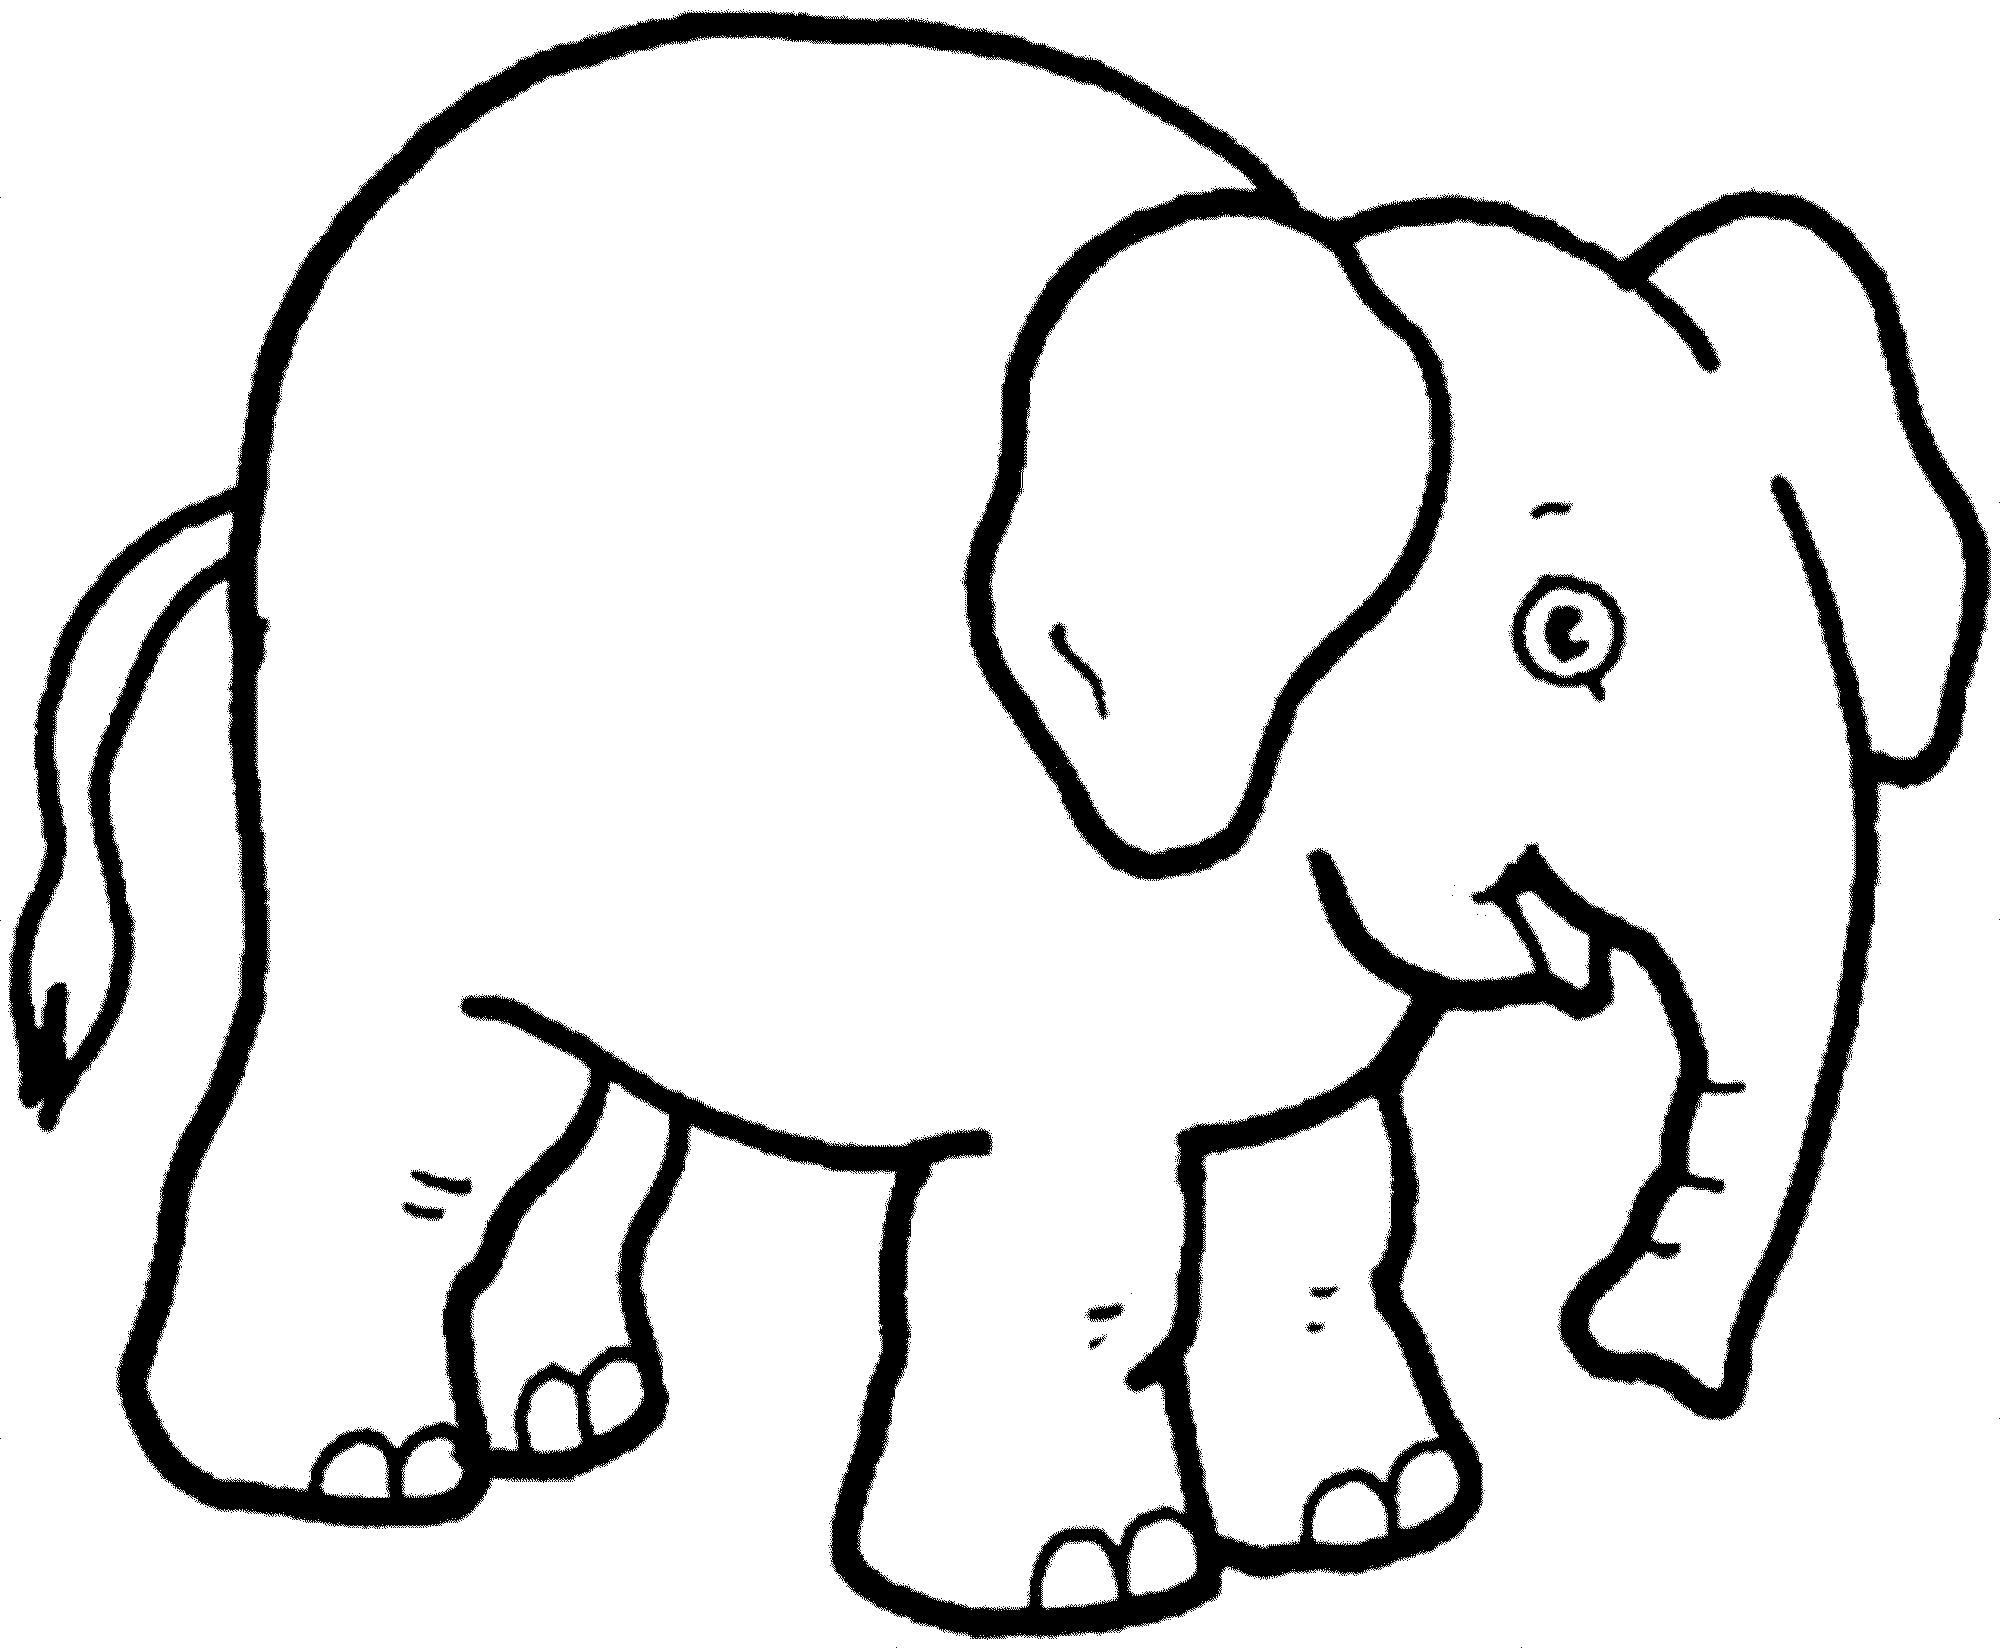 colouring picture of elephant print download teaching kids through elephant coloring colouring elephant of picture 1 1